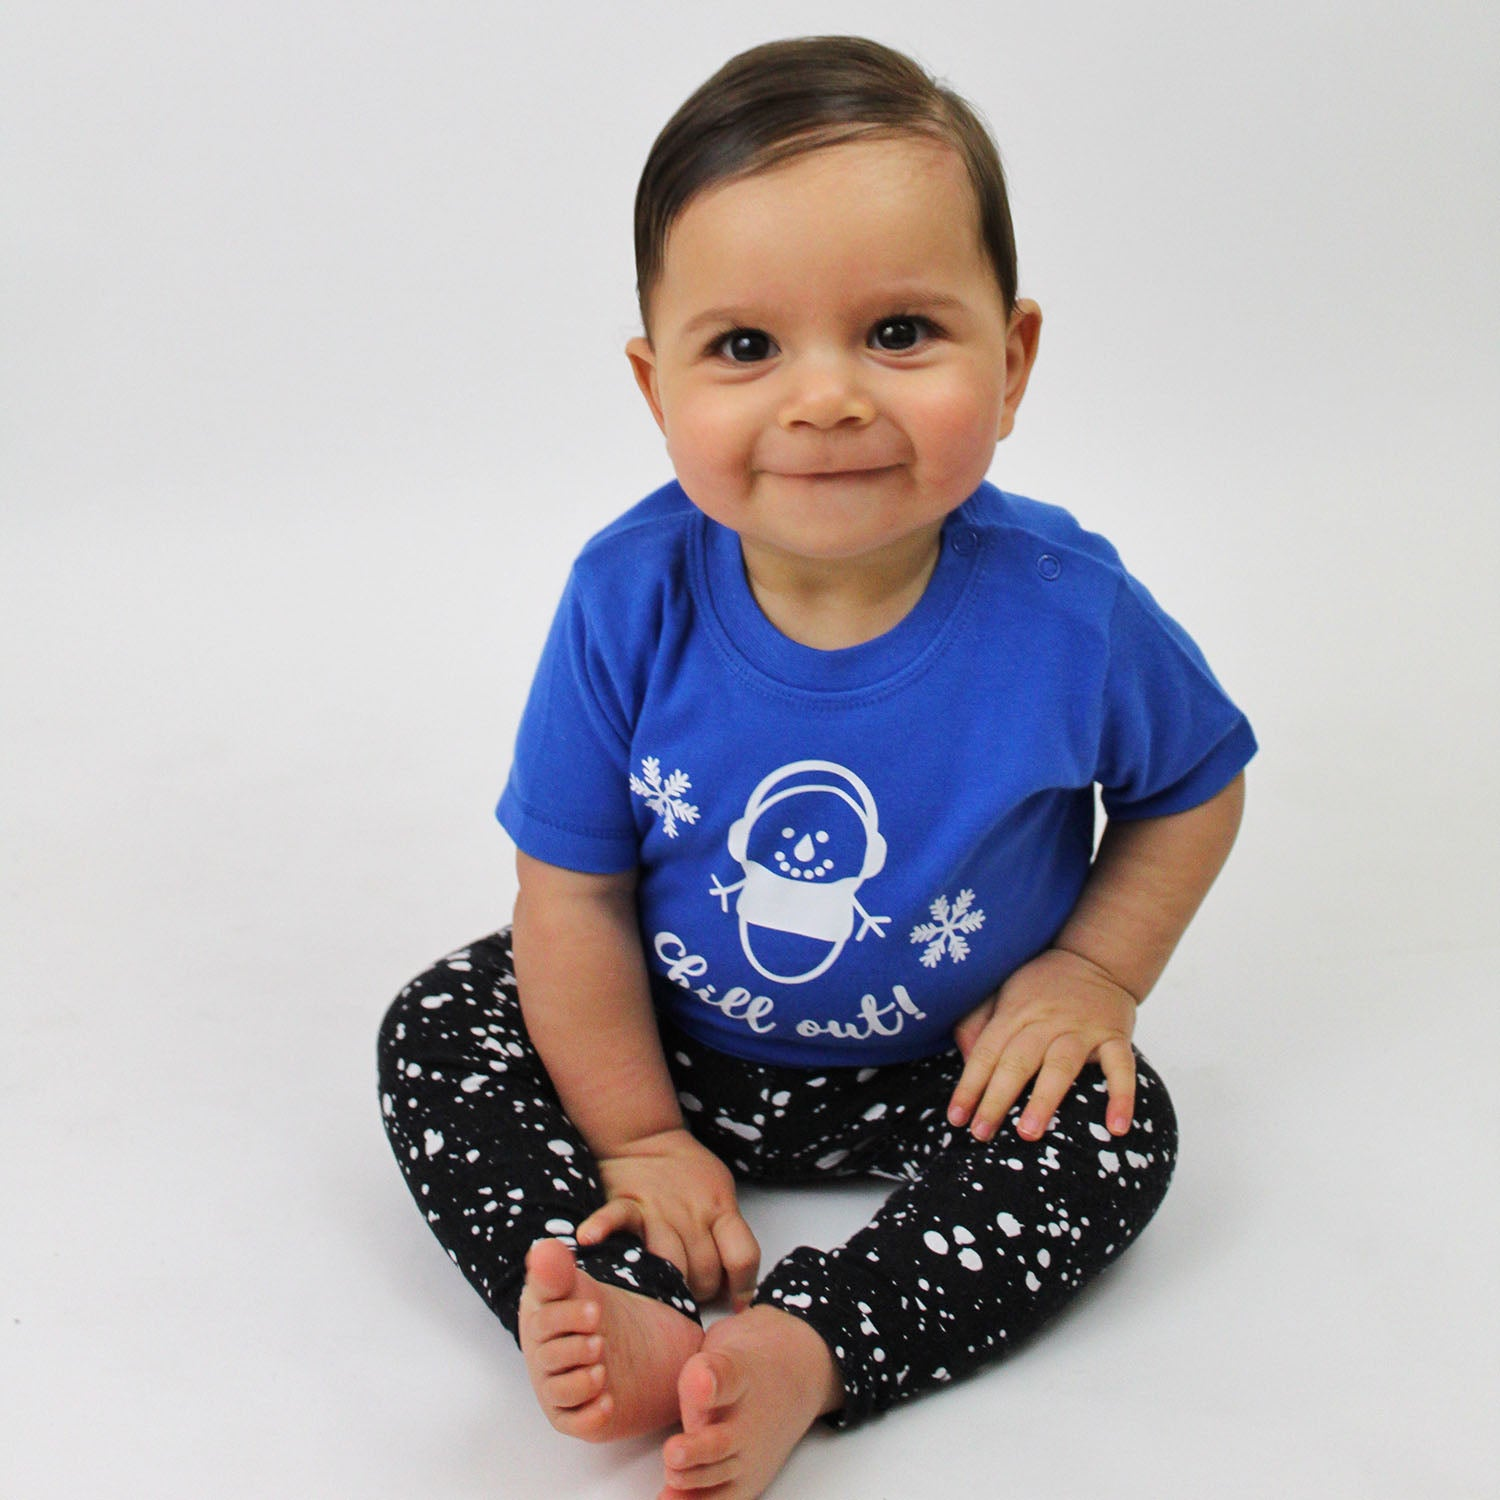 'Chill out' baby shortsleeve shirt